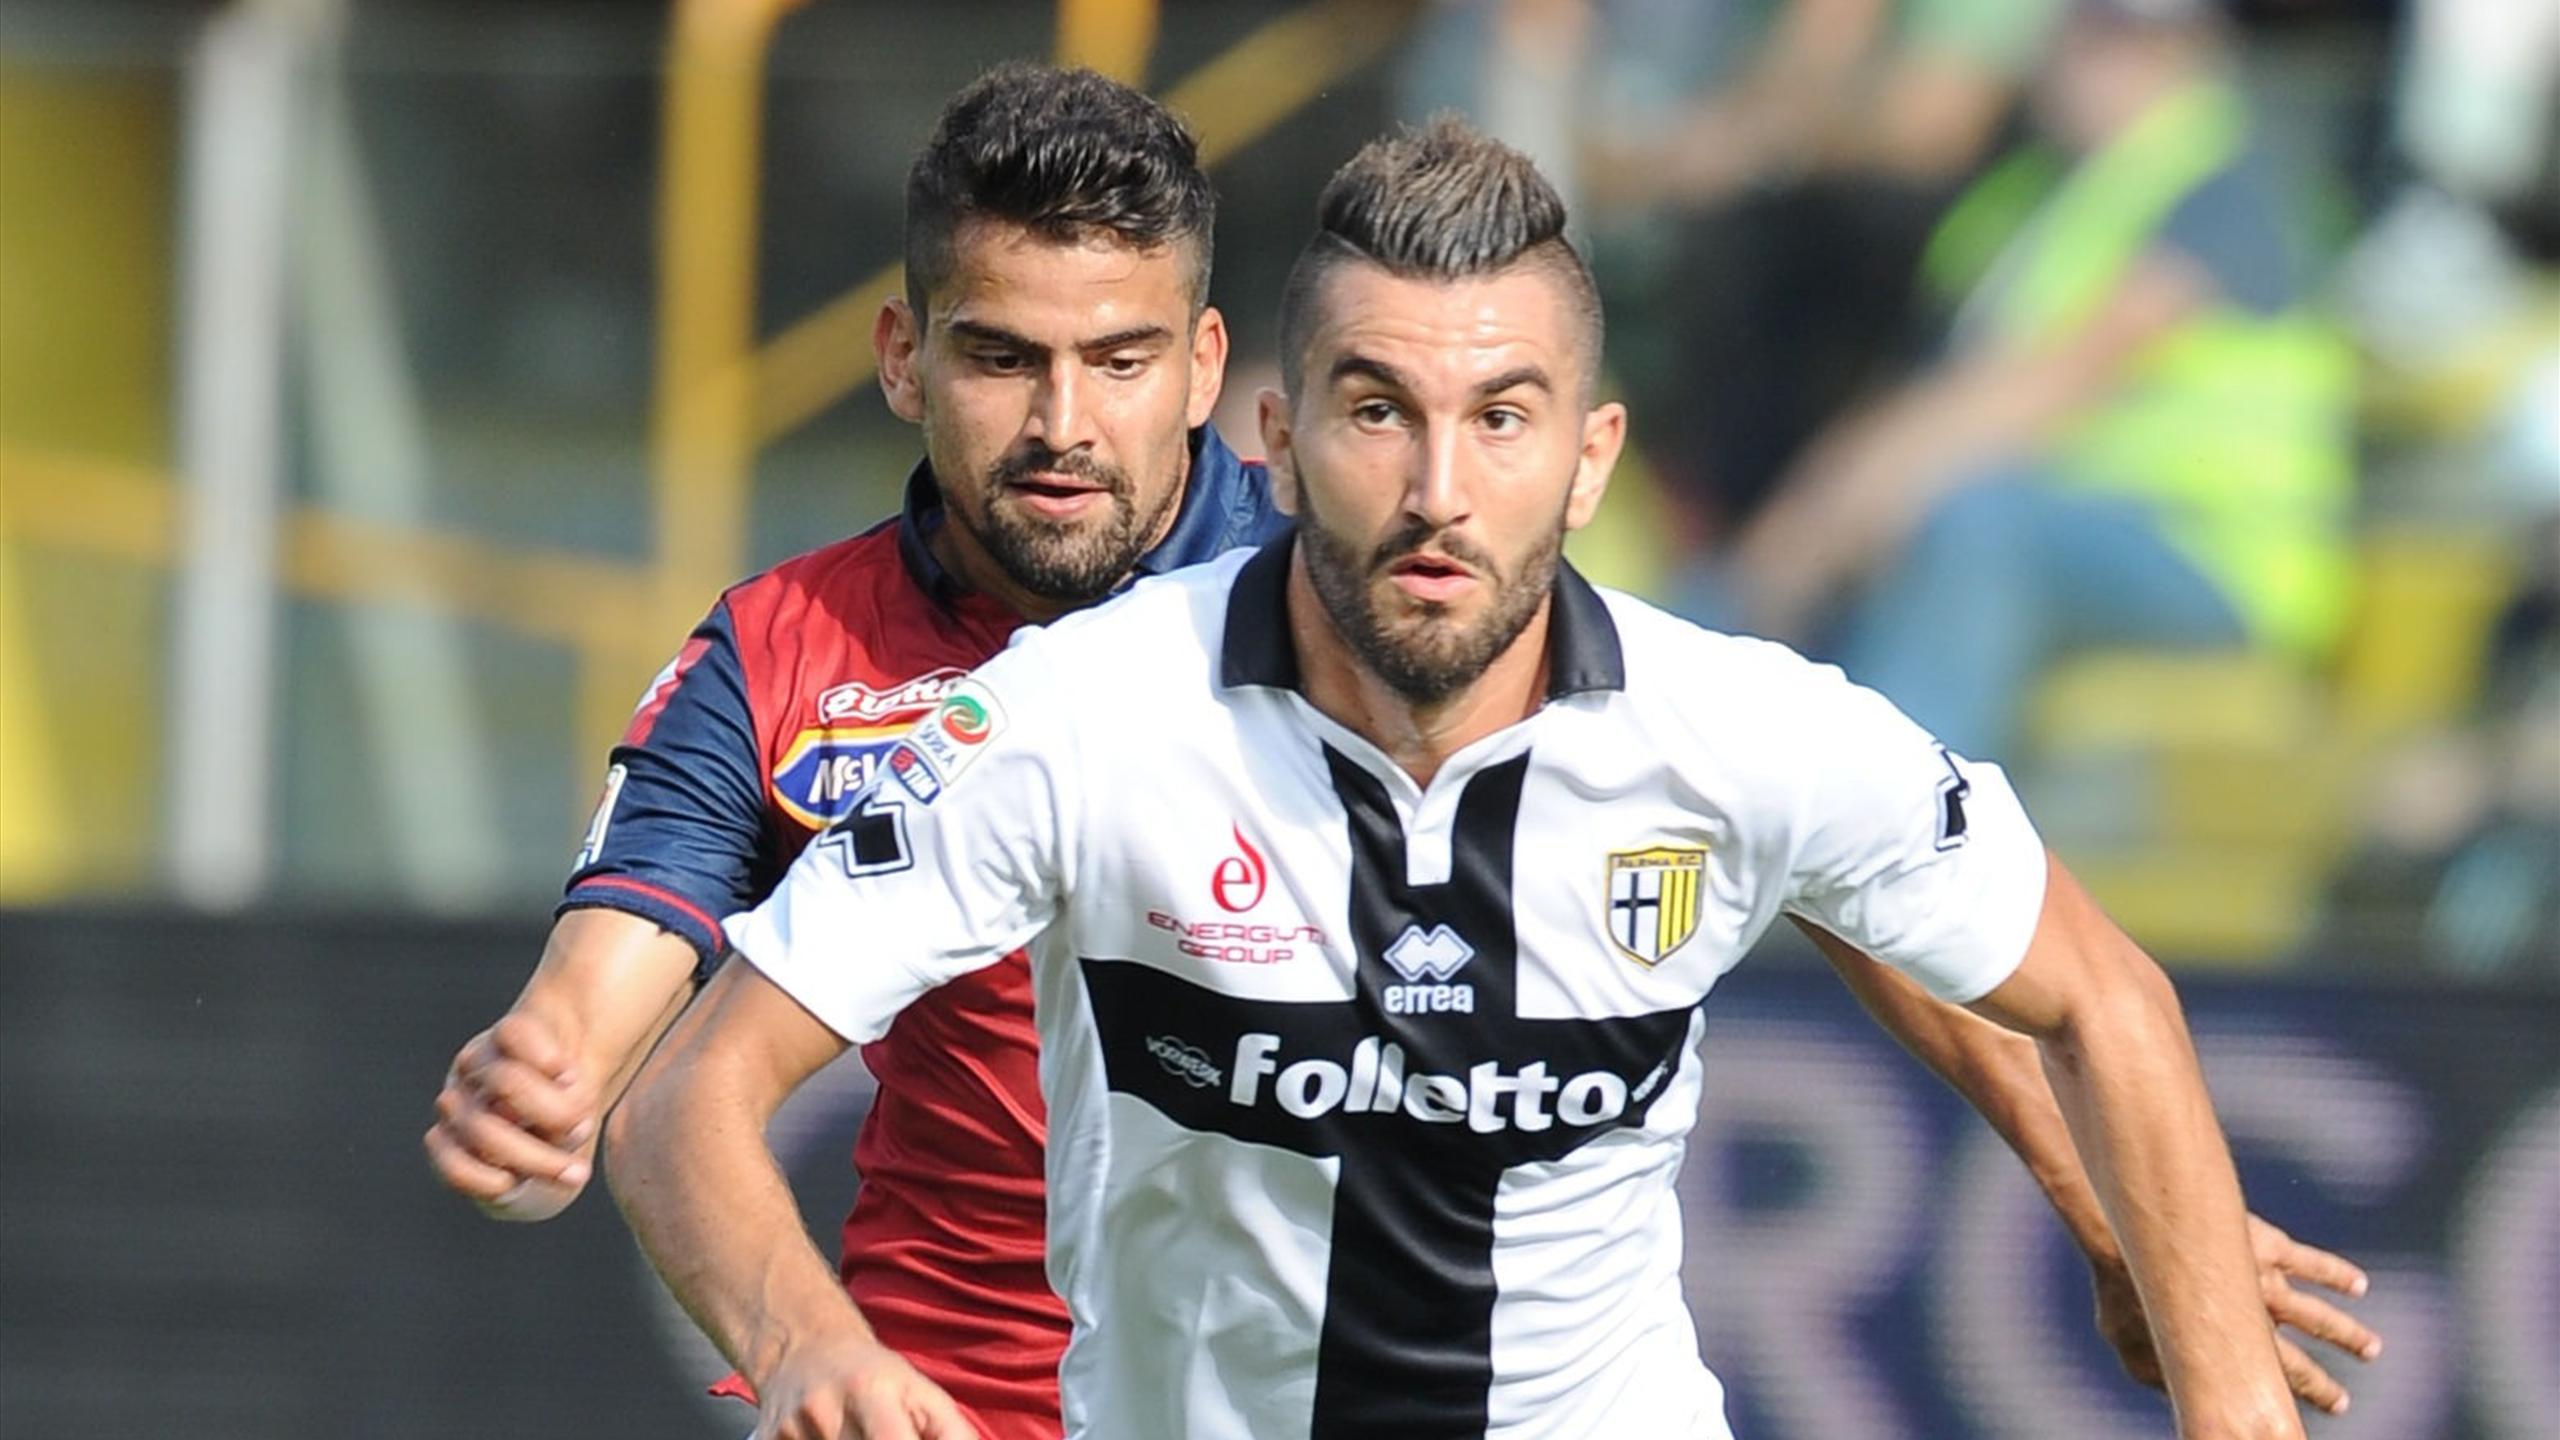 Video: Parma vs Genoa